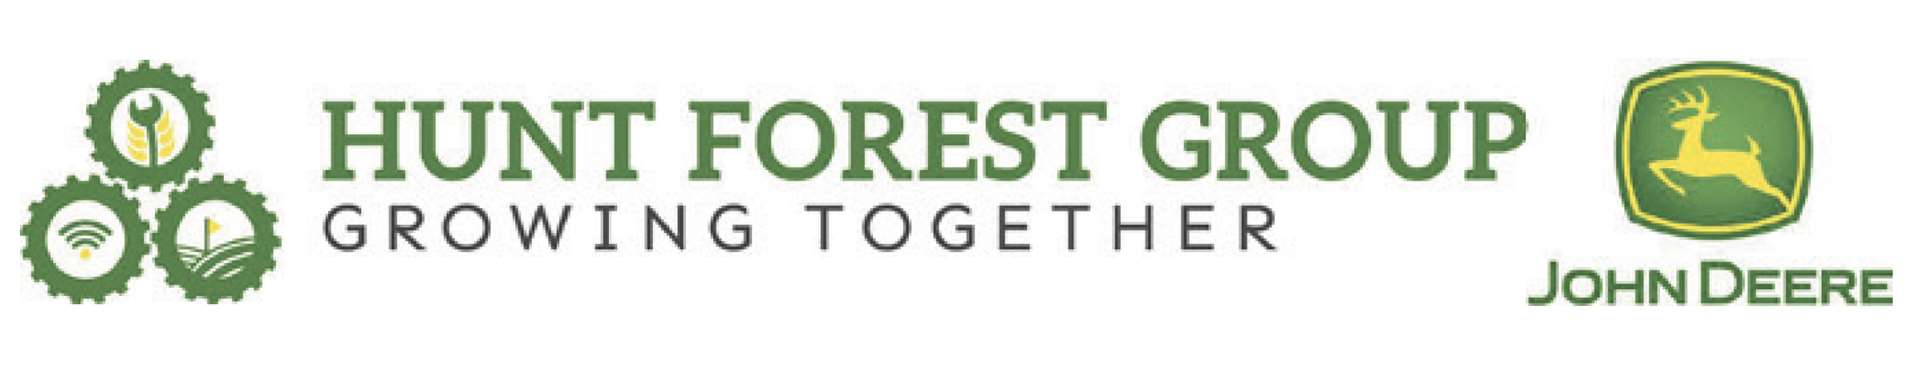 Hunt Forest Group - Technicians